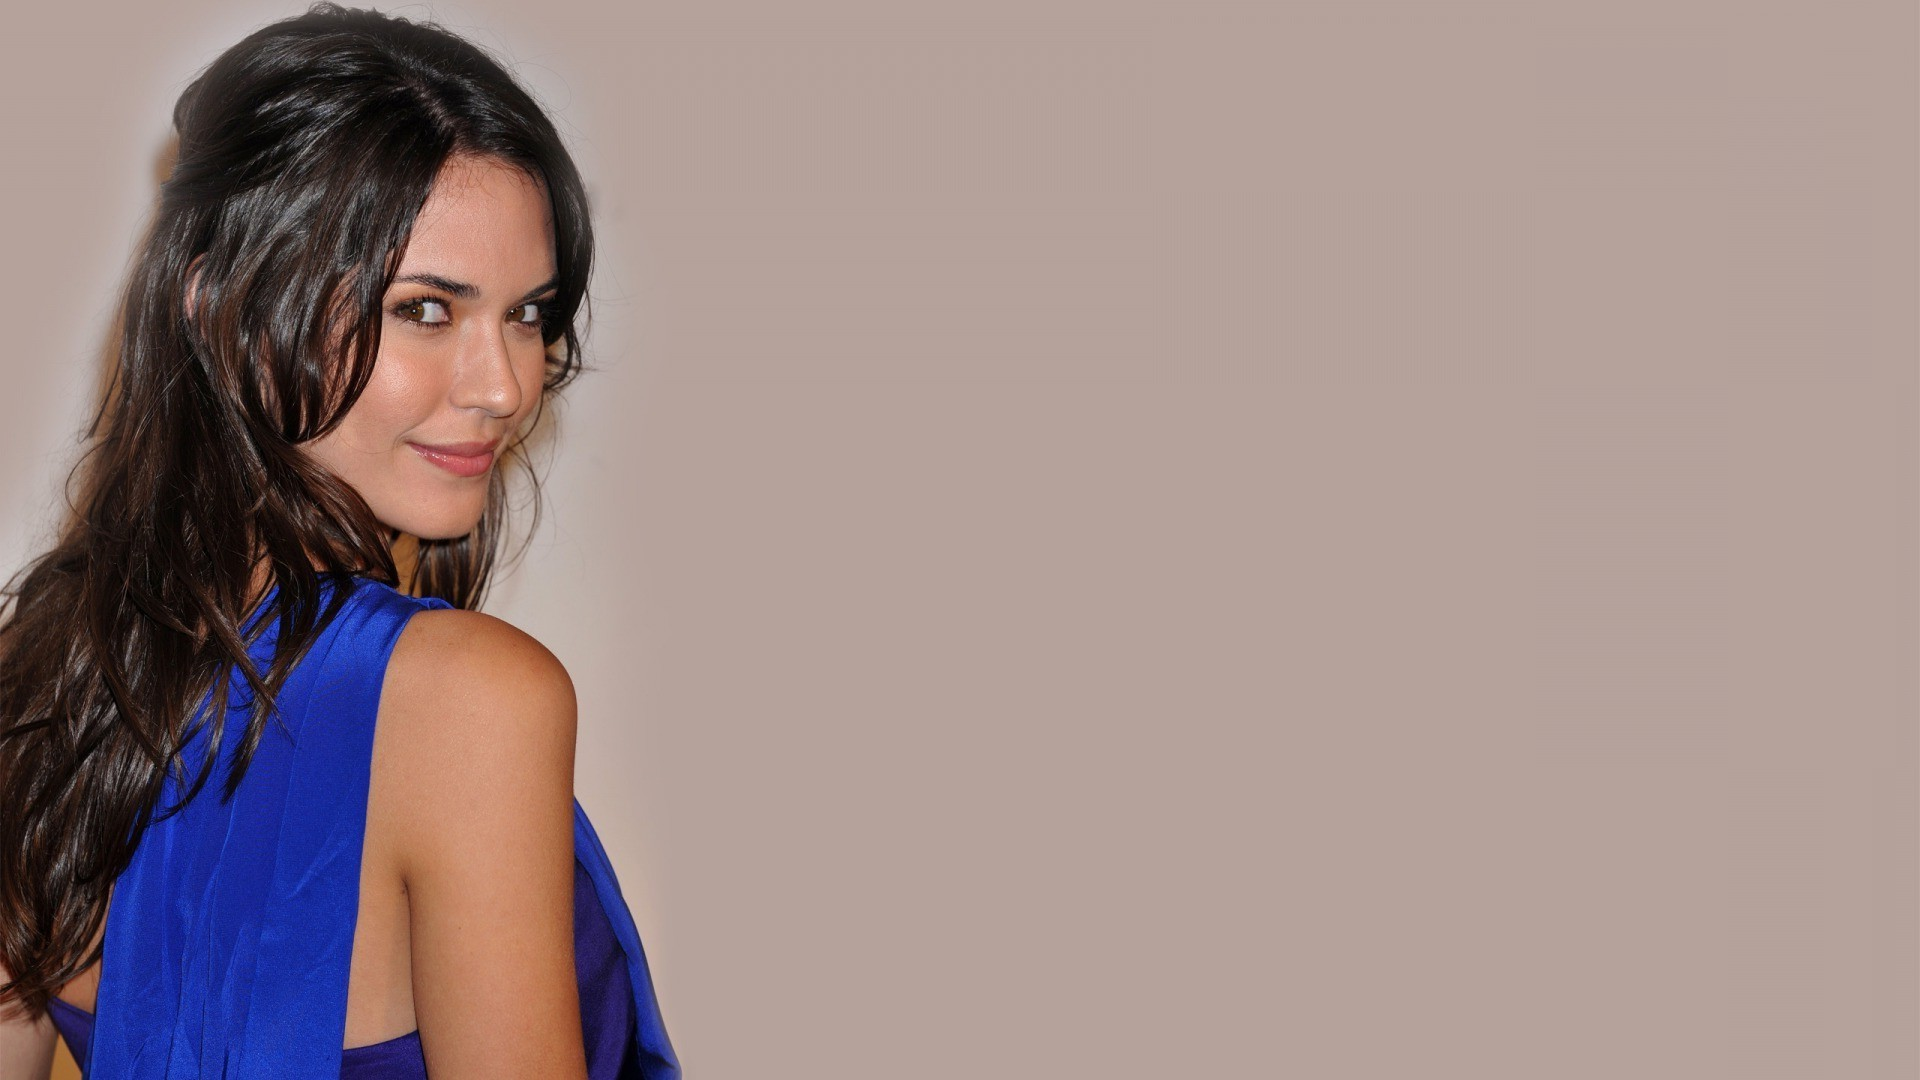 1920x1080 - Odette Annable Wallpapers 37